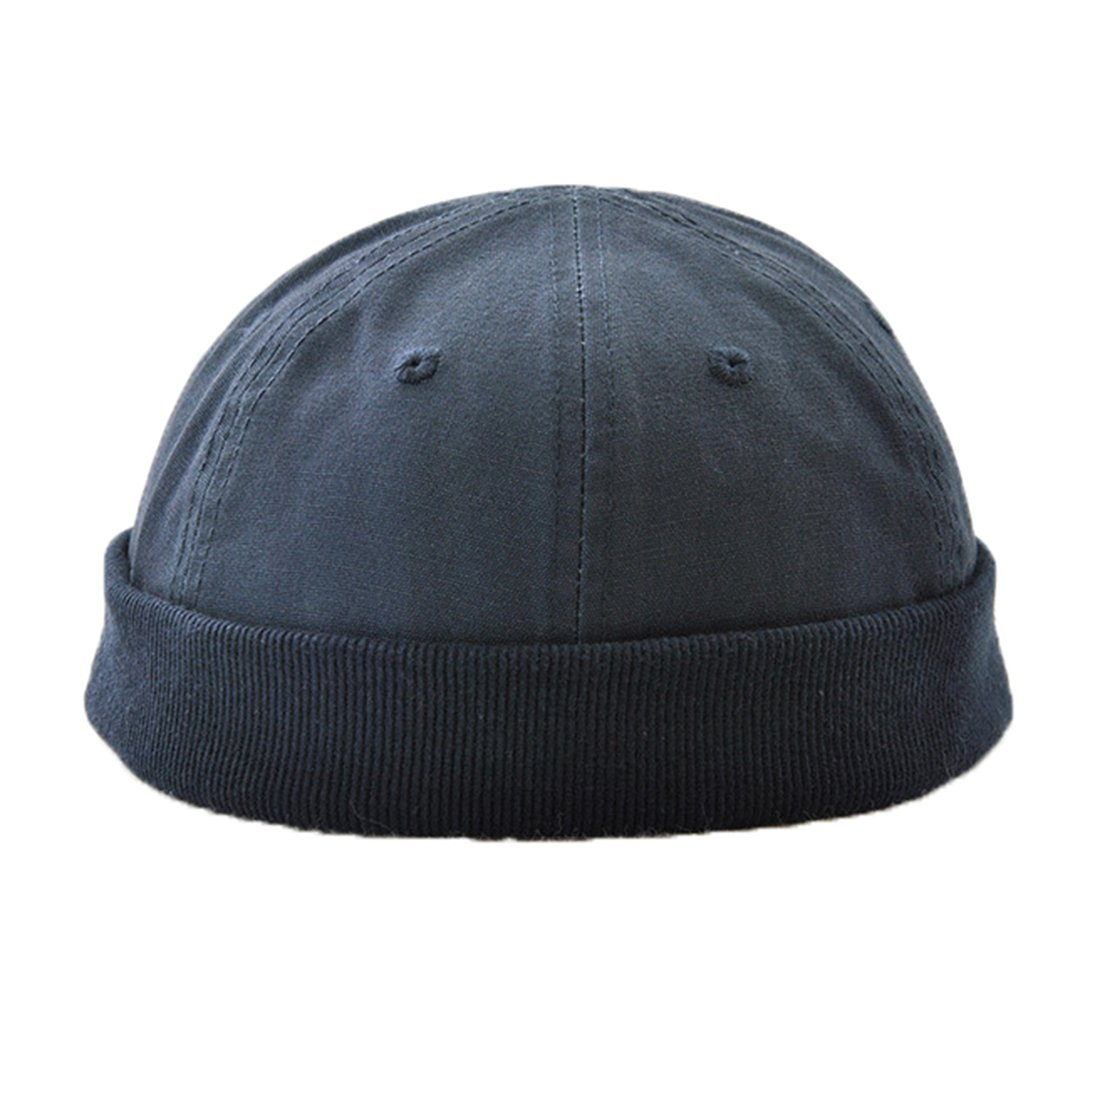 Ez-sofei Men's Retro Chinese Style Solid Color Rolled Cuff Skull Caps Brimless Beanie Hat (B-Dark Blue)